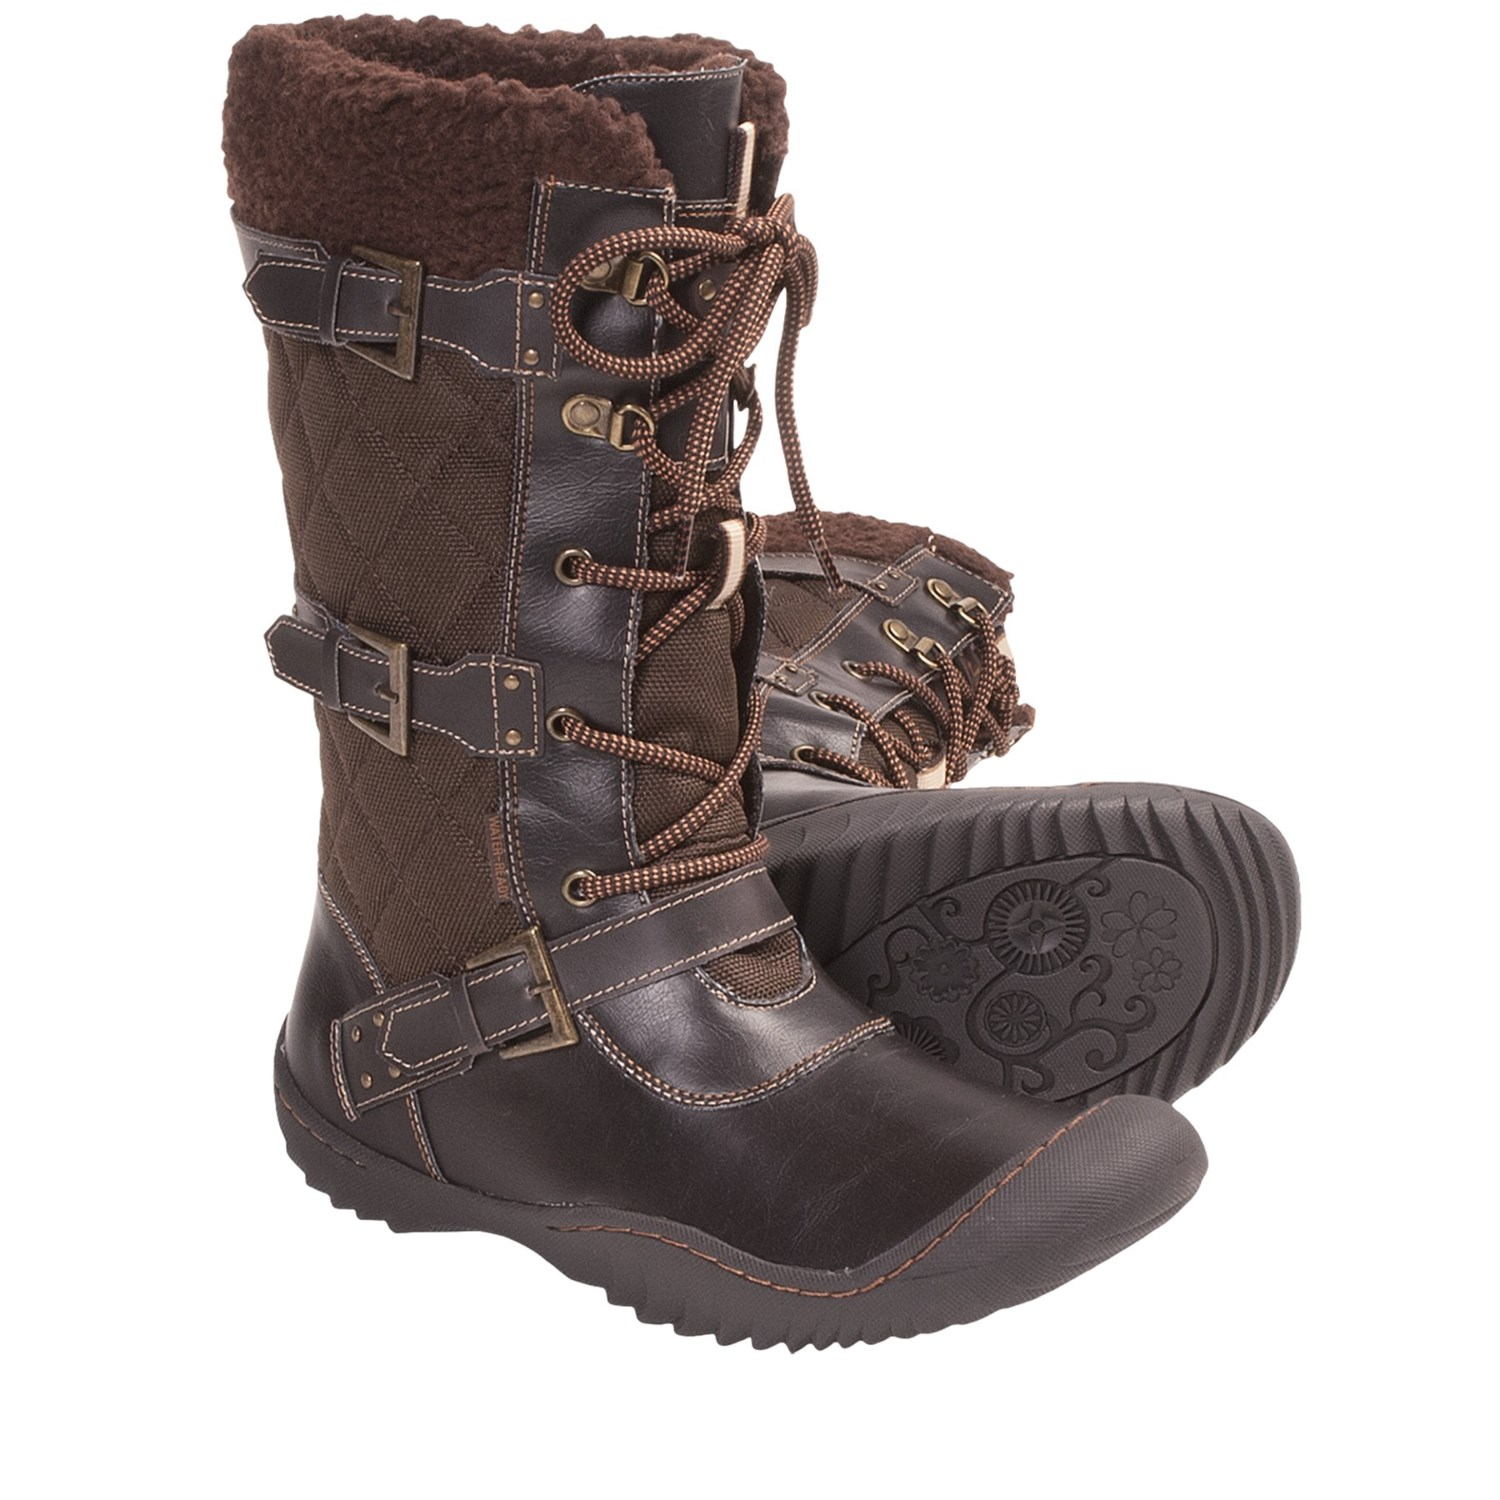 Perfect A Good Pair Of Winter Boots Can Help Make Winter Exponentially Better Whether You Shovel Feet Upon Feet Of Snow Every Winter Or You Spend Time Outside In Cold Temperatures, Were Here To Help You Choose The Footwear That Will Best Suit